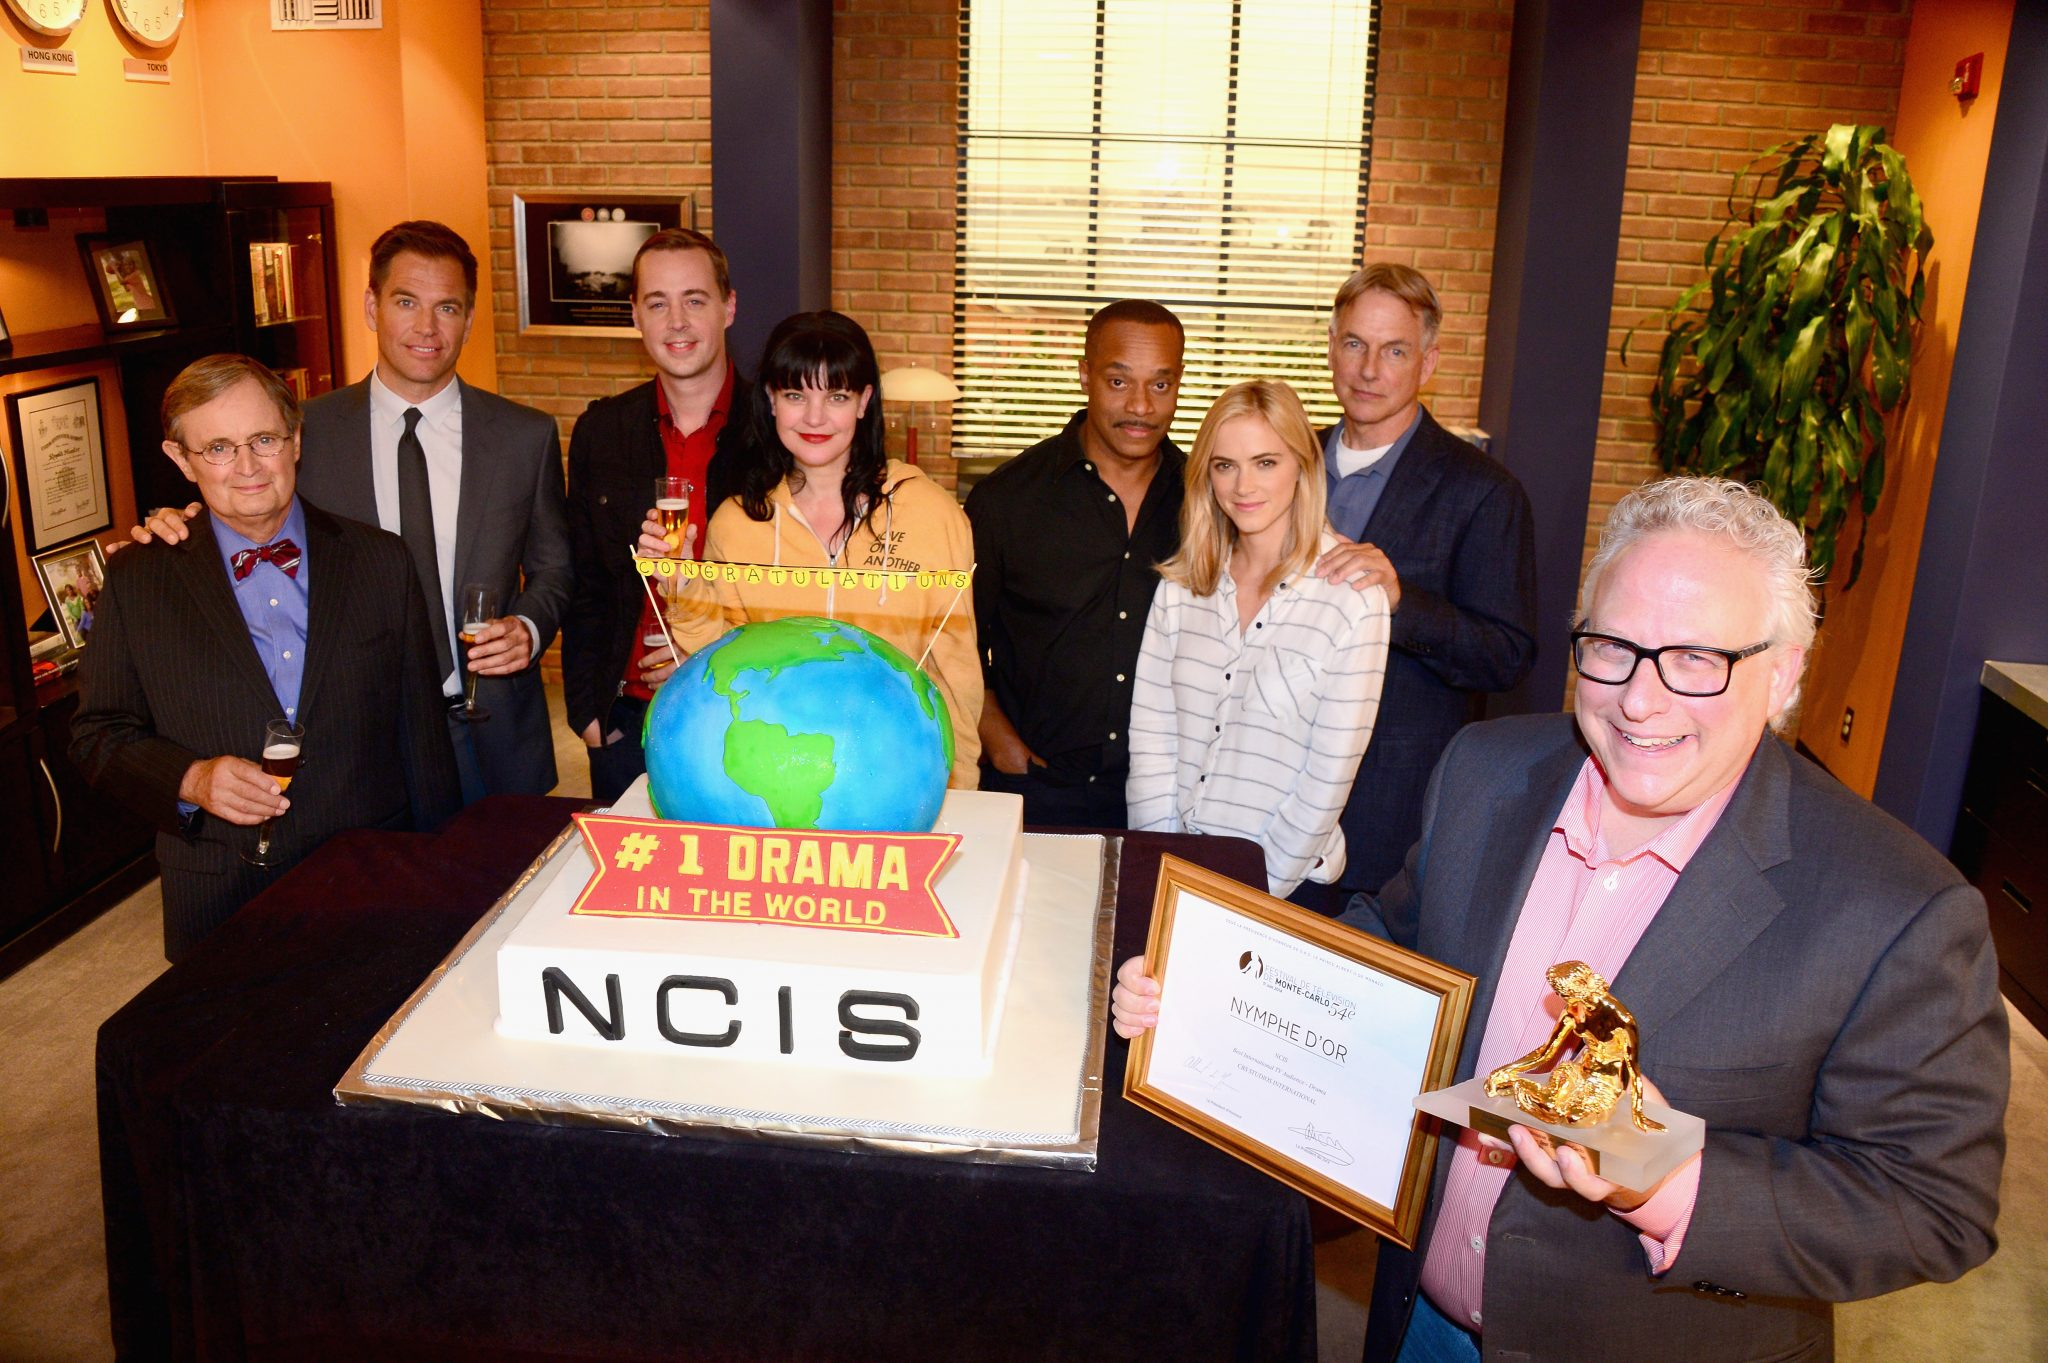 """NCIS"" Celebrates Being Named The Most-Watched Drama In The World"